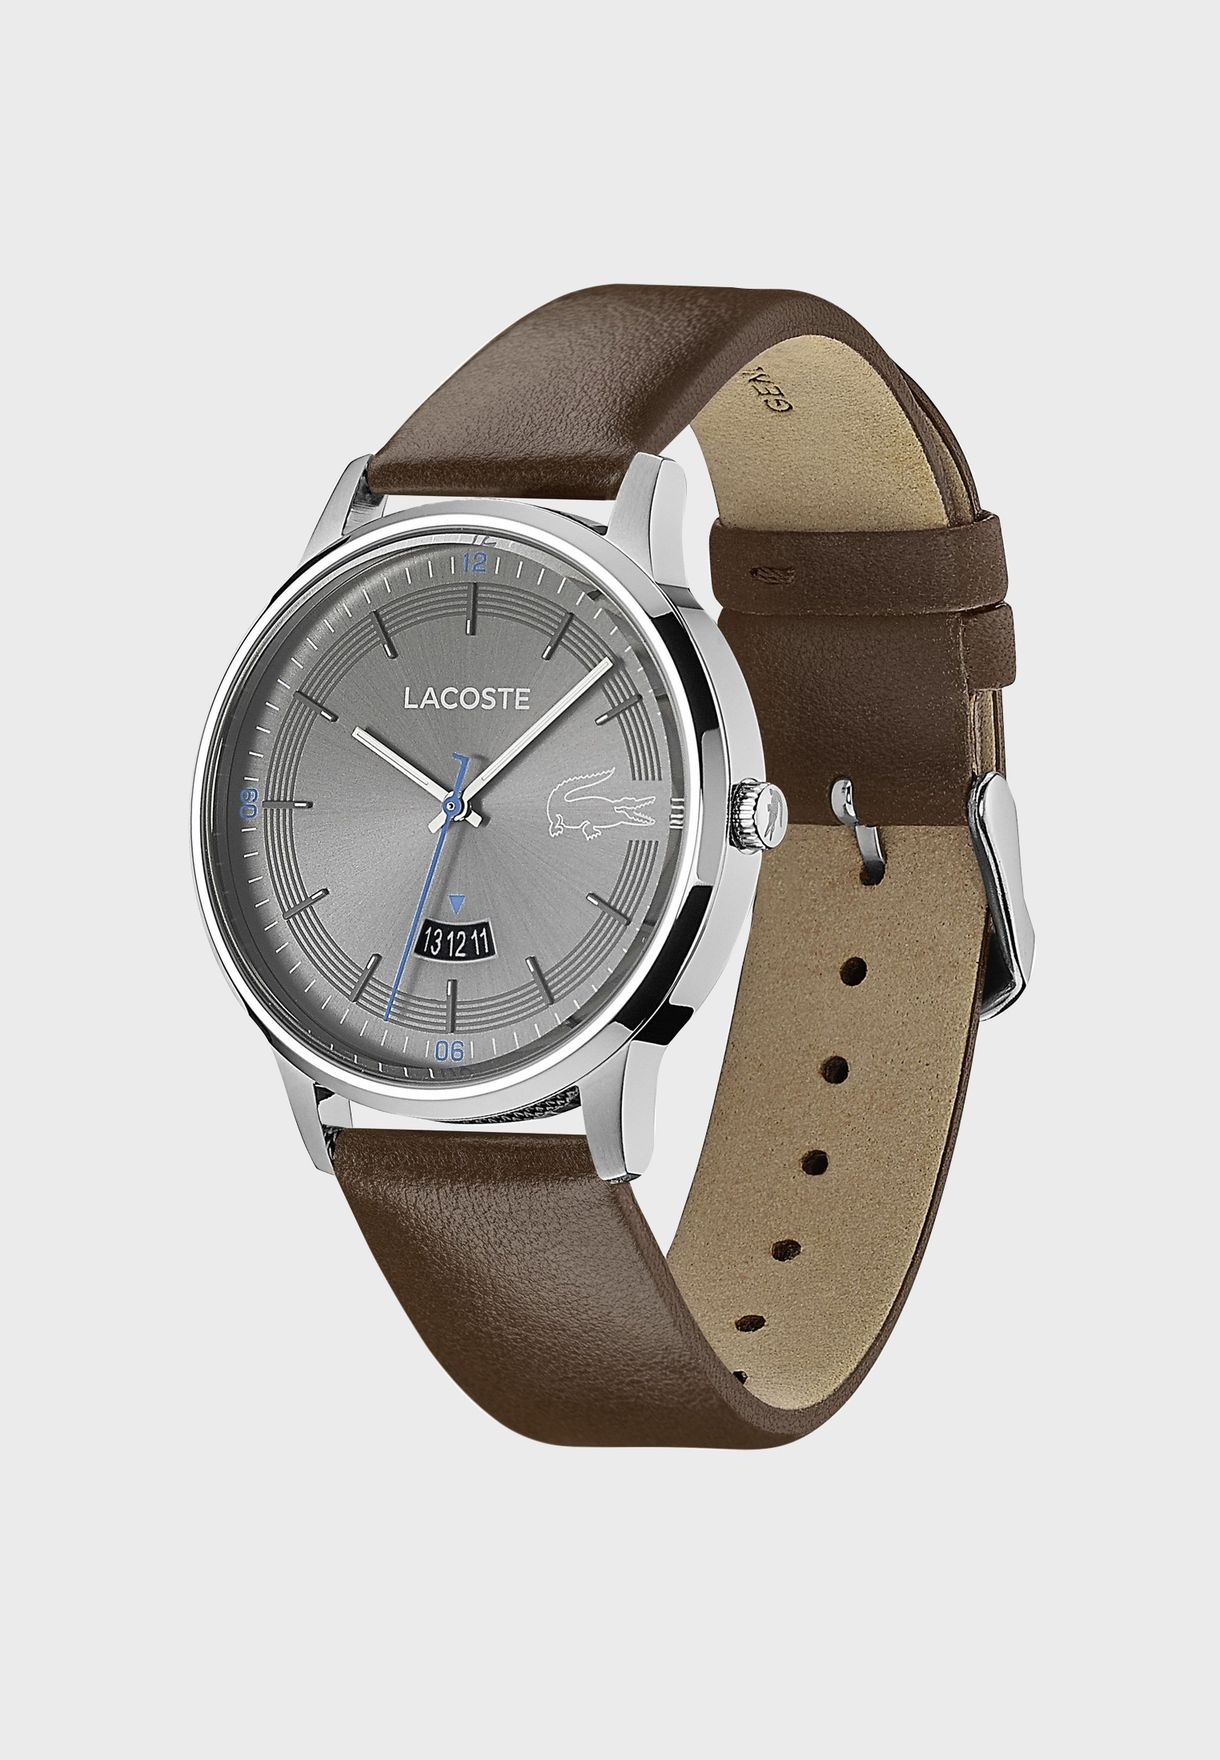 Lacoste MADRID Leather Strap Watch for Men - 2011033